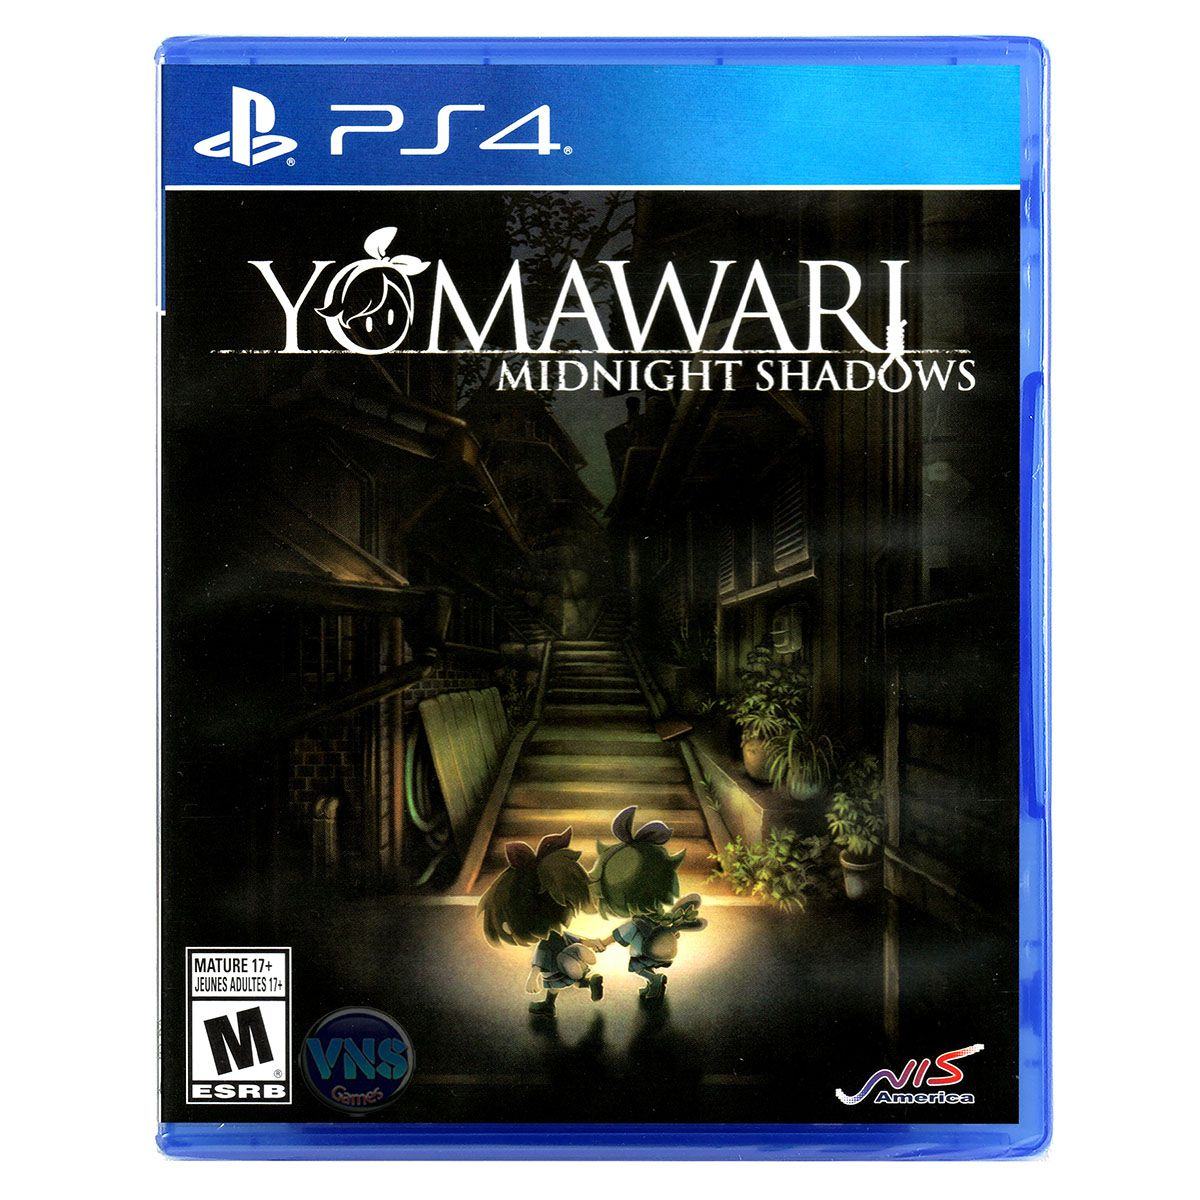 Yomawari Midnight Shadows - PS4